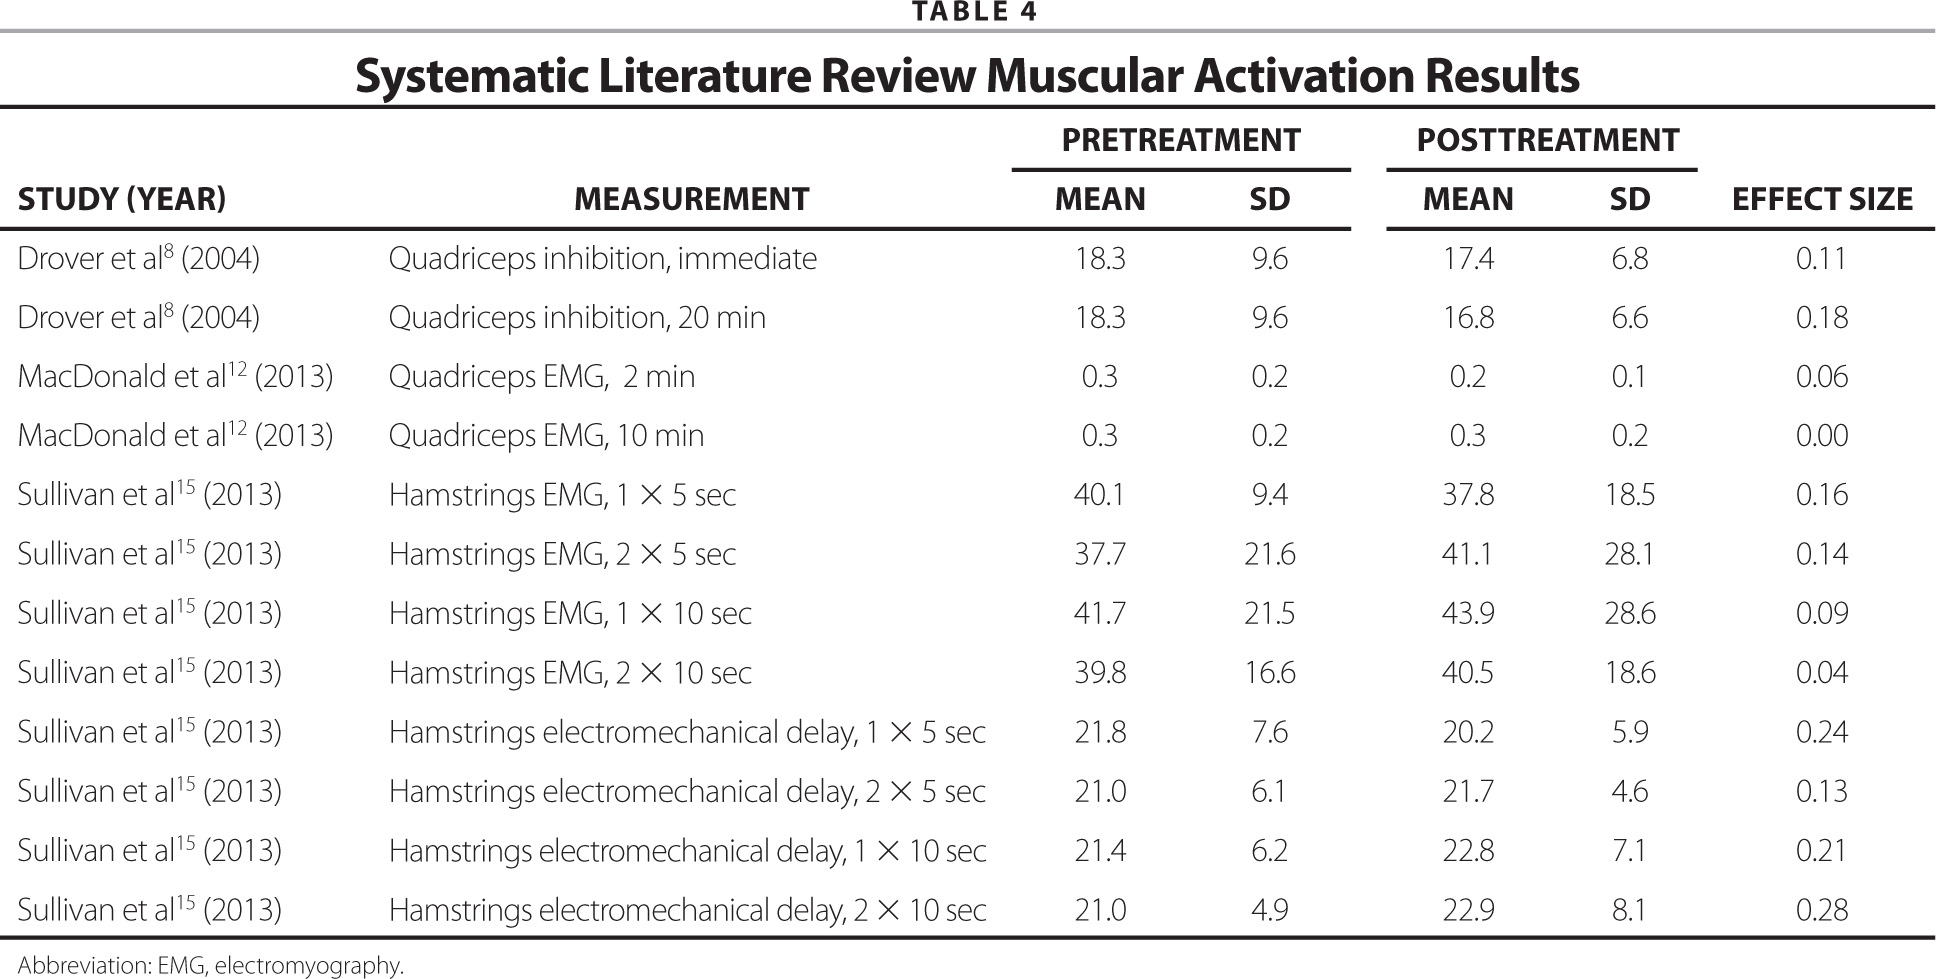 Systematic Literature Review Muscular Activation Results